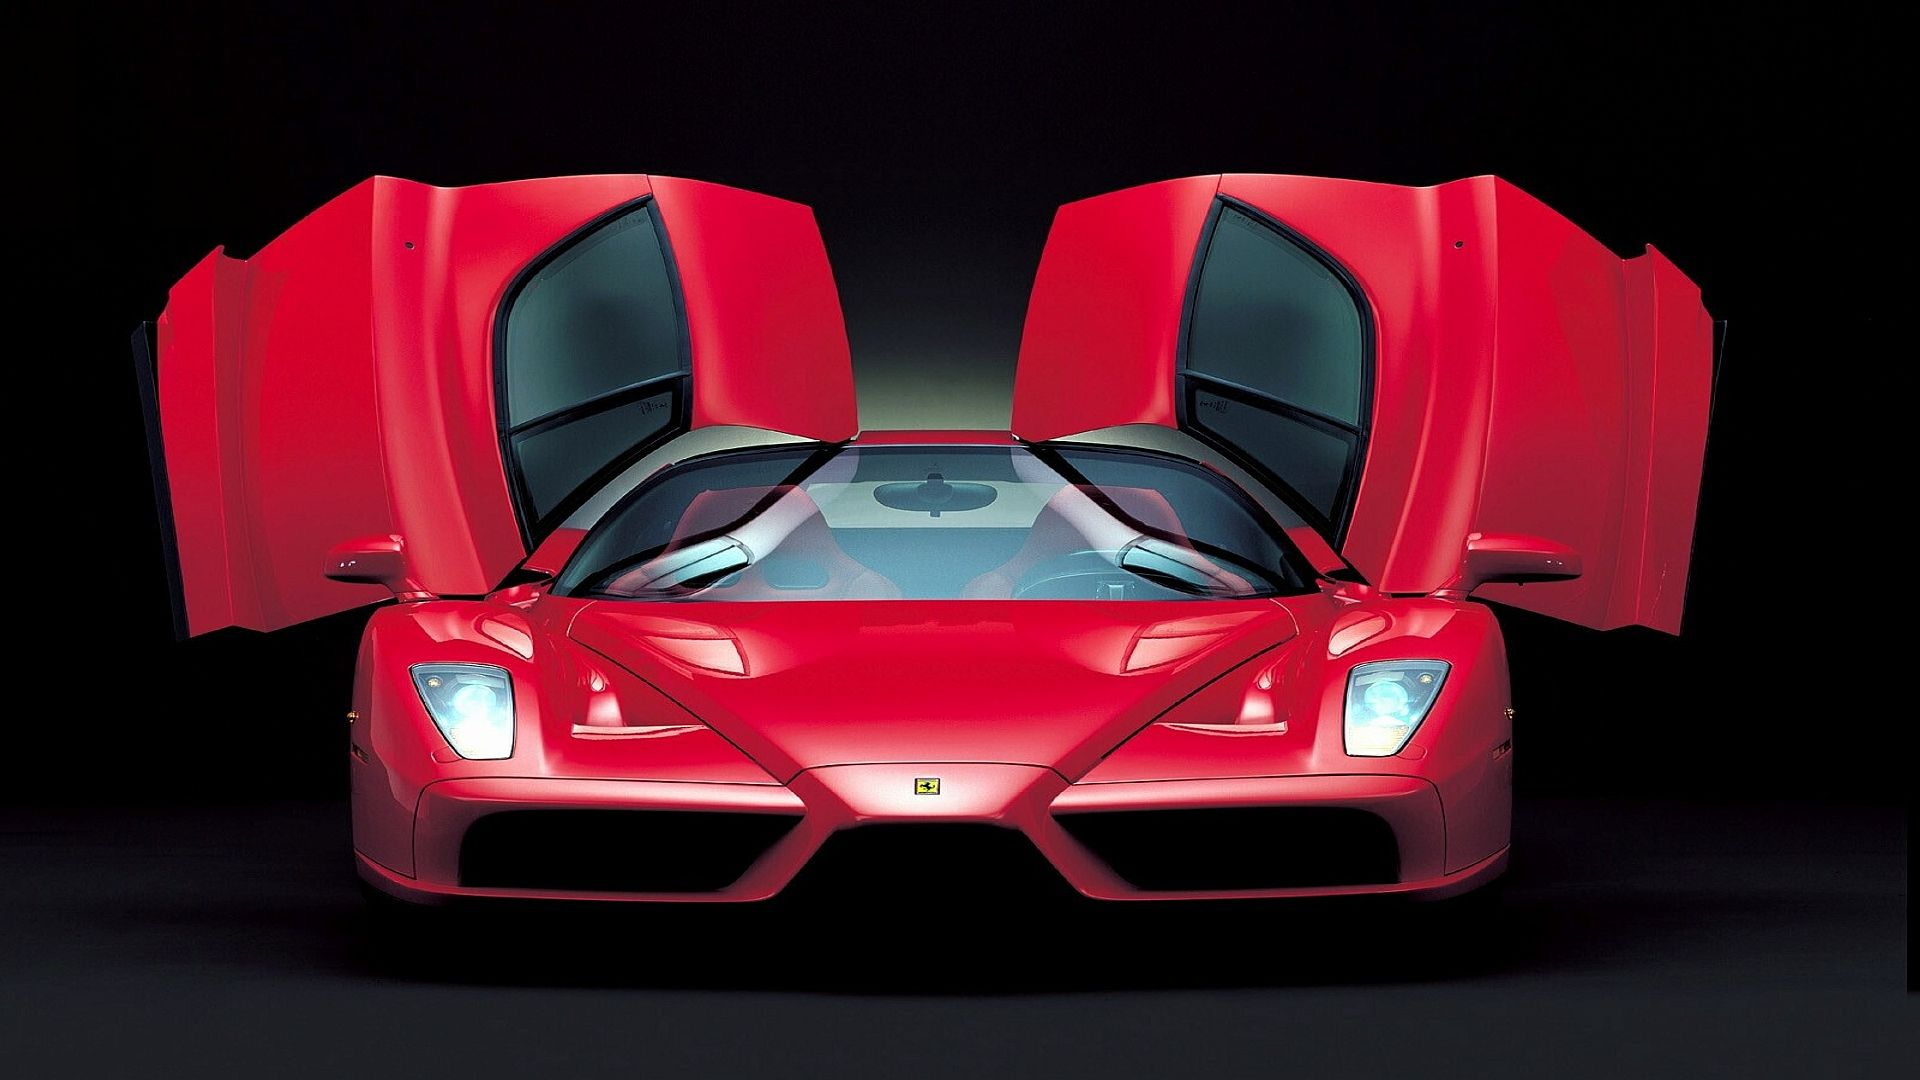 Beautiful Free Ferrari Wallpapers Download   HyperCarWallpaper   HyperCarWallpaper